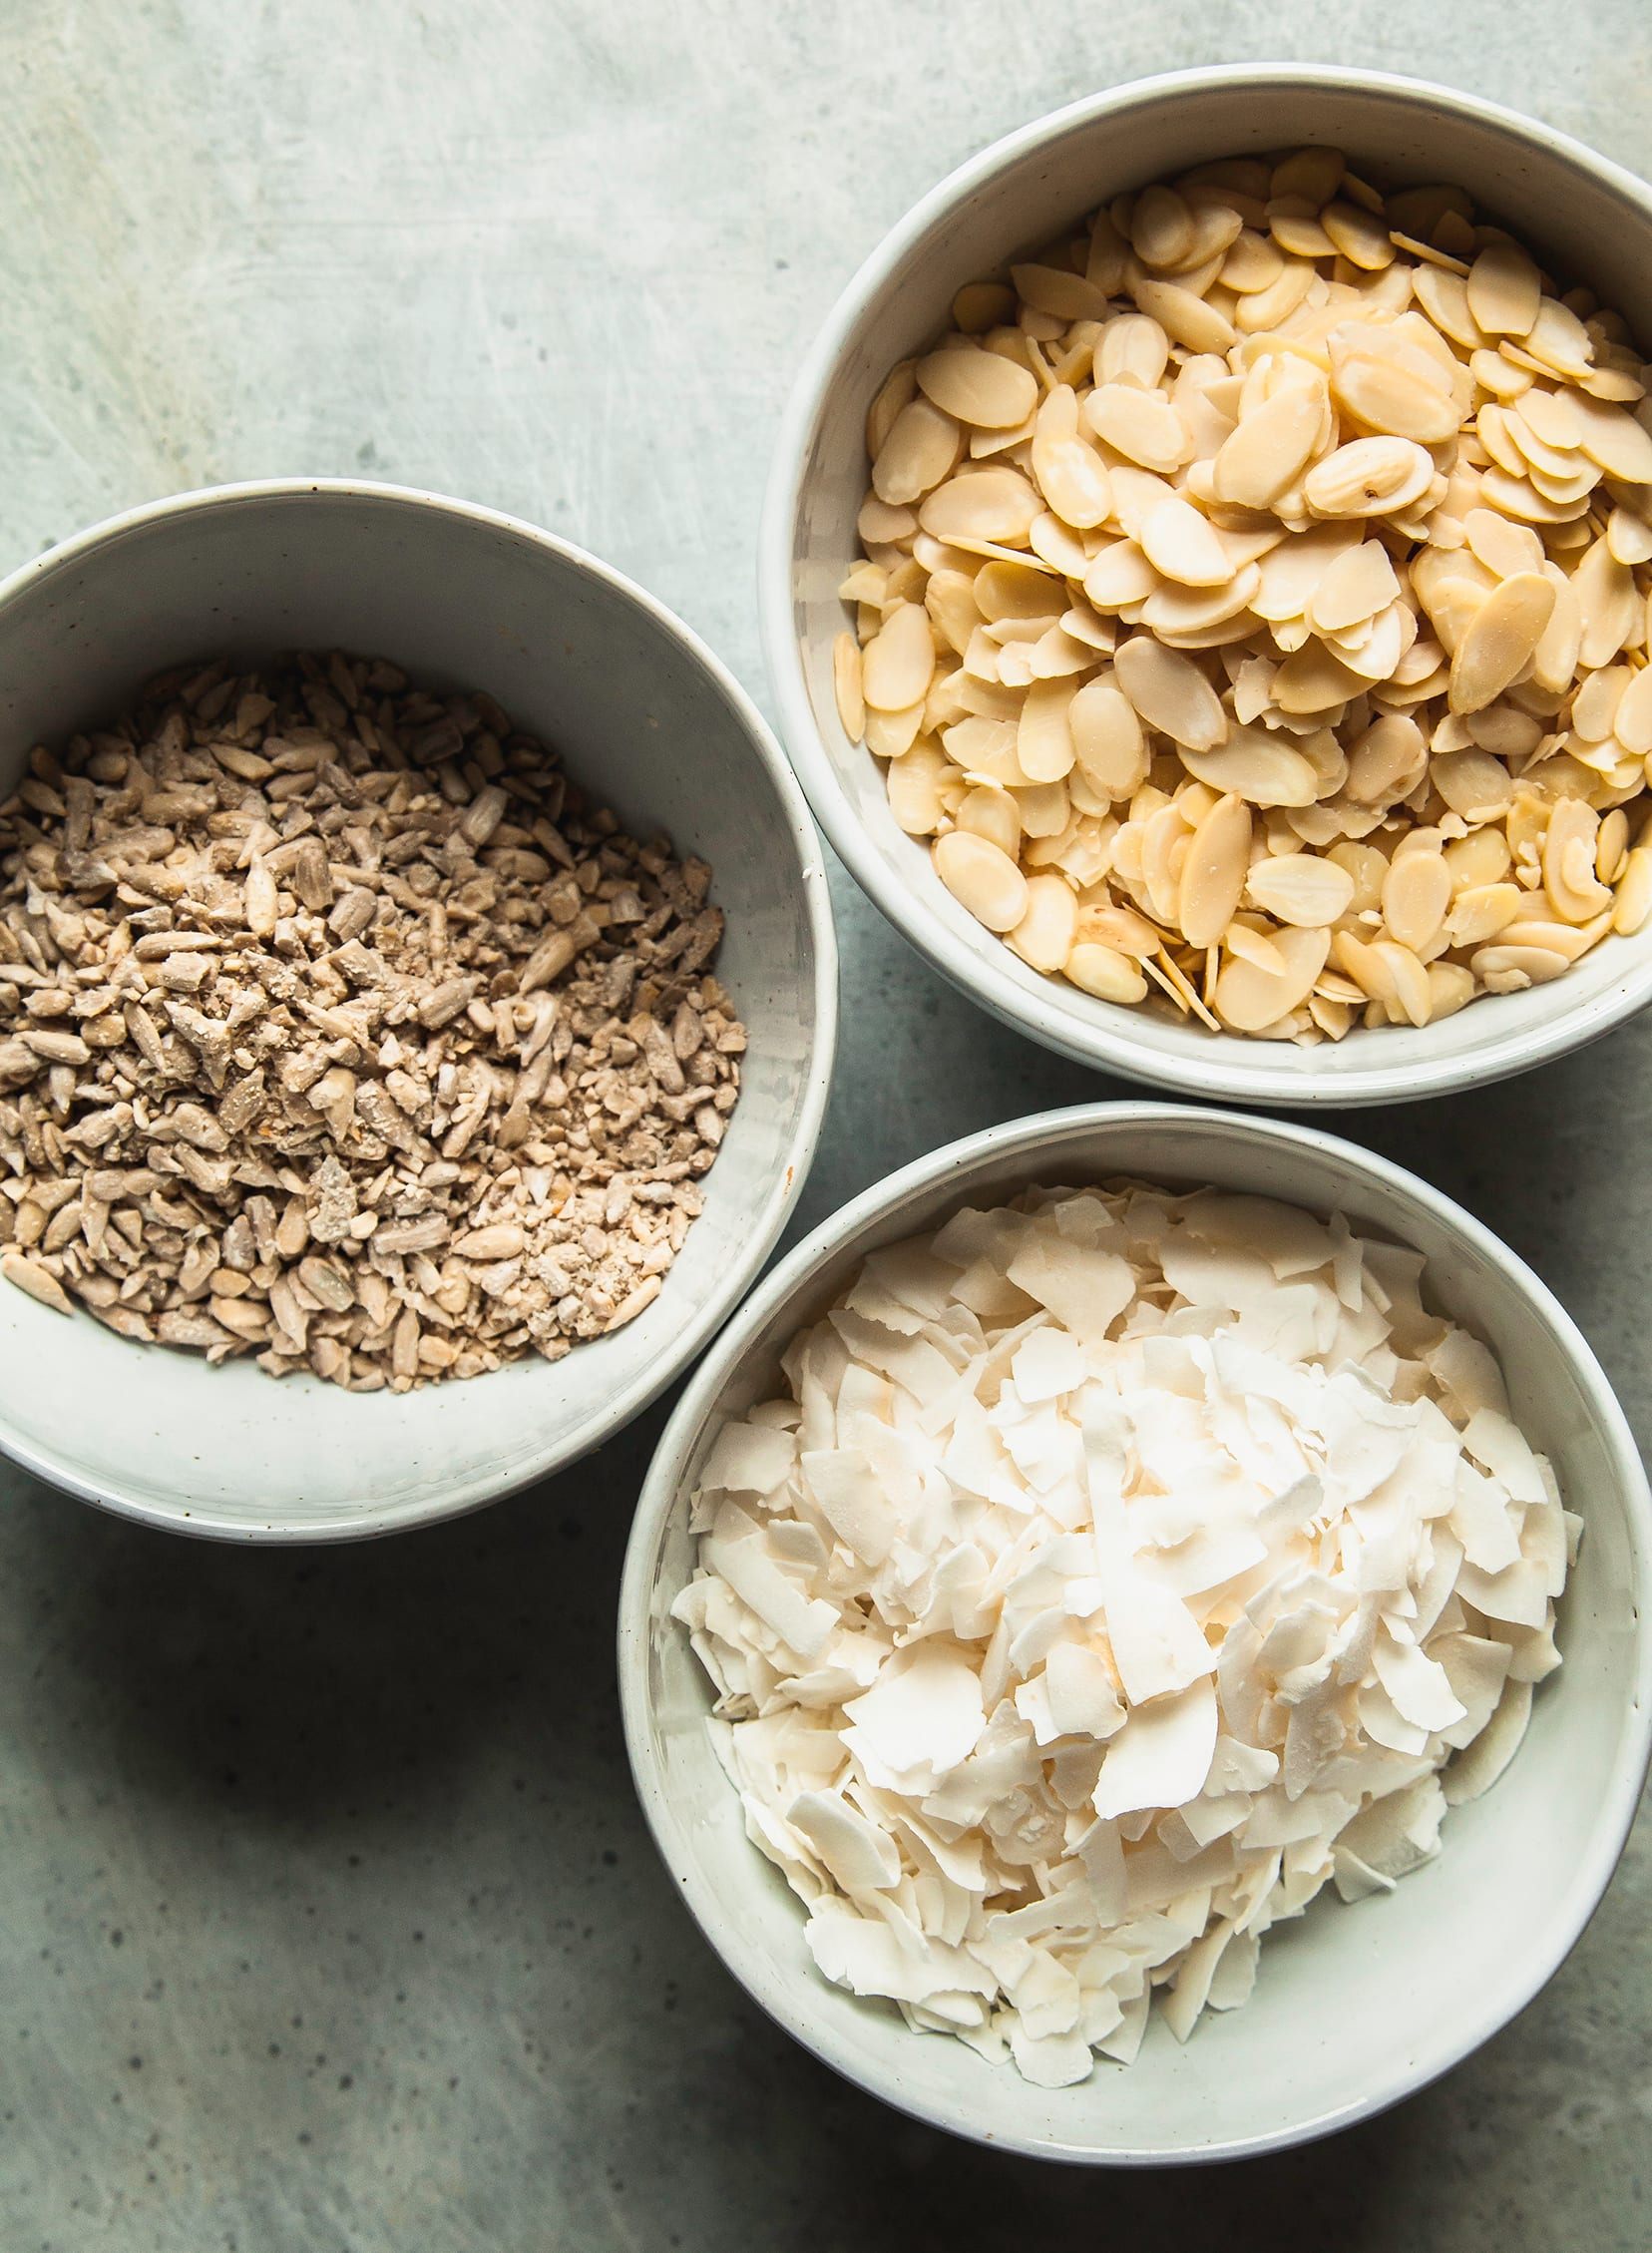 An overhead shot of ingredients in bowls: sunflower seeds, sliced almonds, and large coconut flakes.